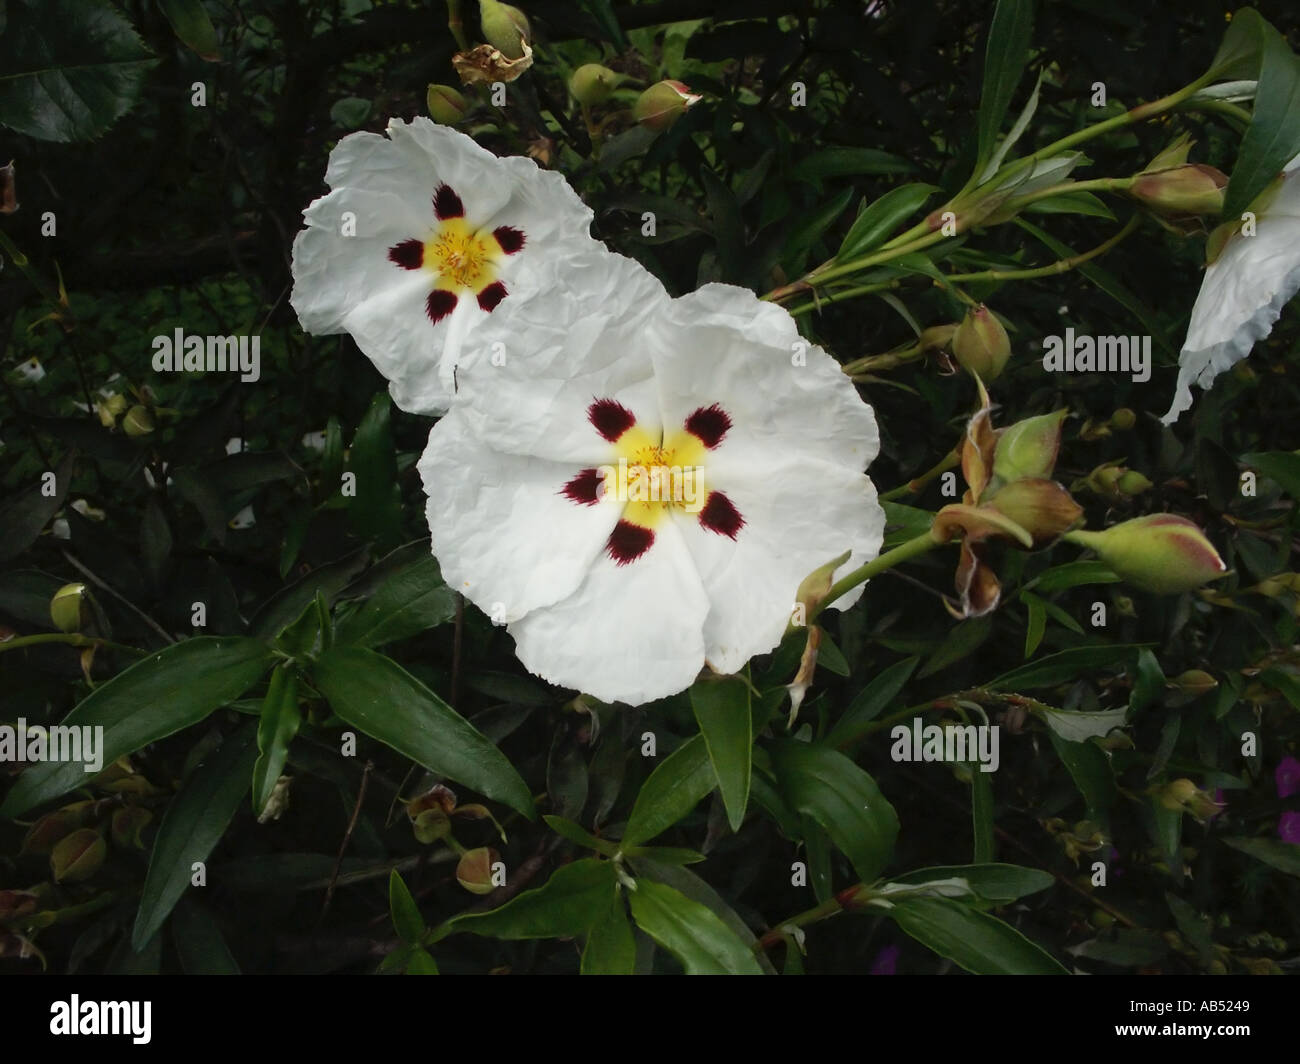 Cistus cistaceae rock rose white flower yellow centre evergreen cistus cistaceae rock rose white flower yellow centre evergreen shrub succession short lived flowers travel and tourism mightylinksfo Gallery